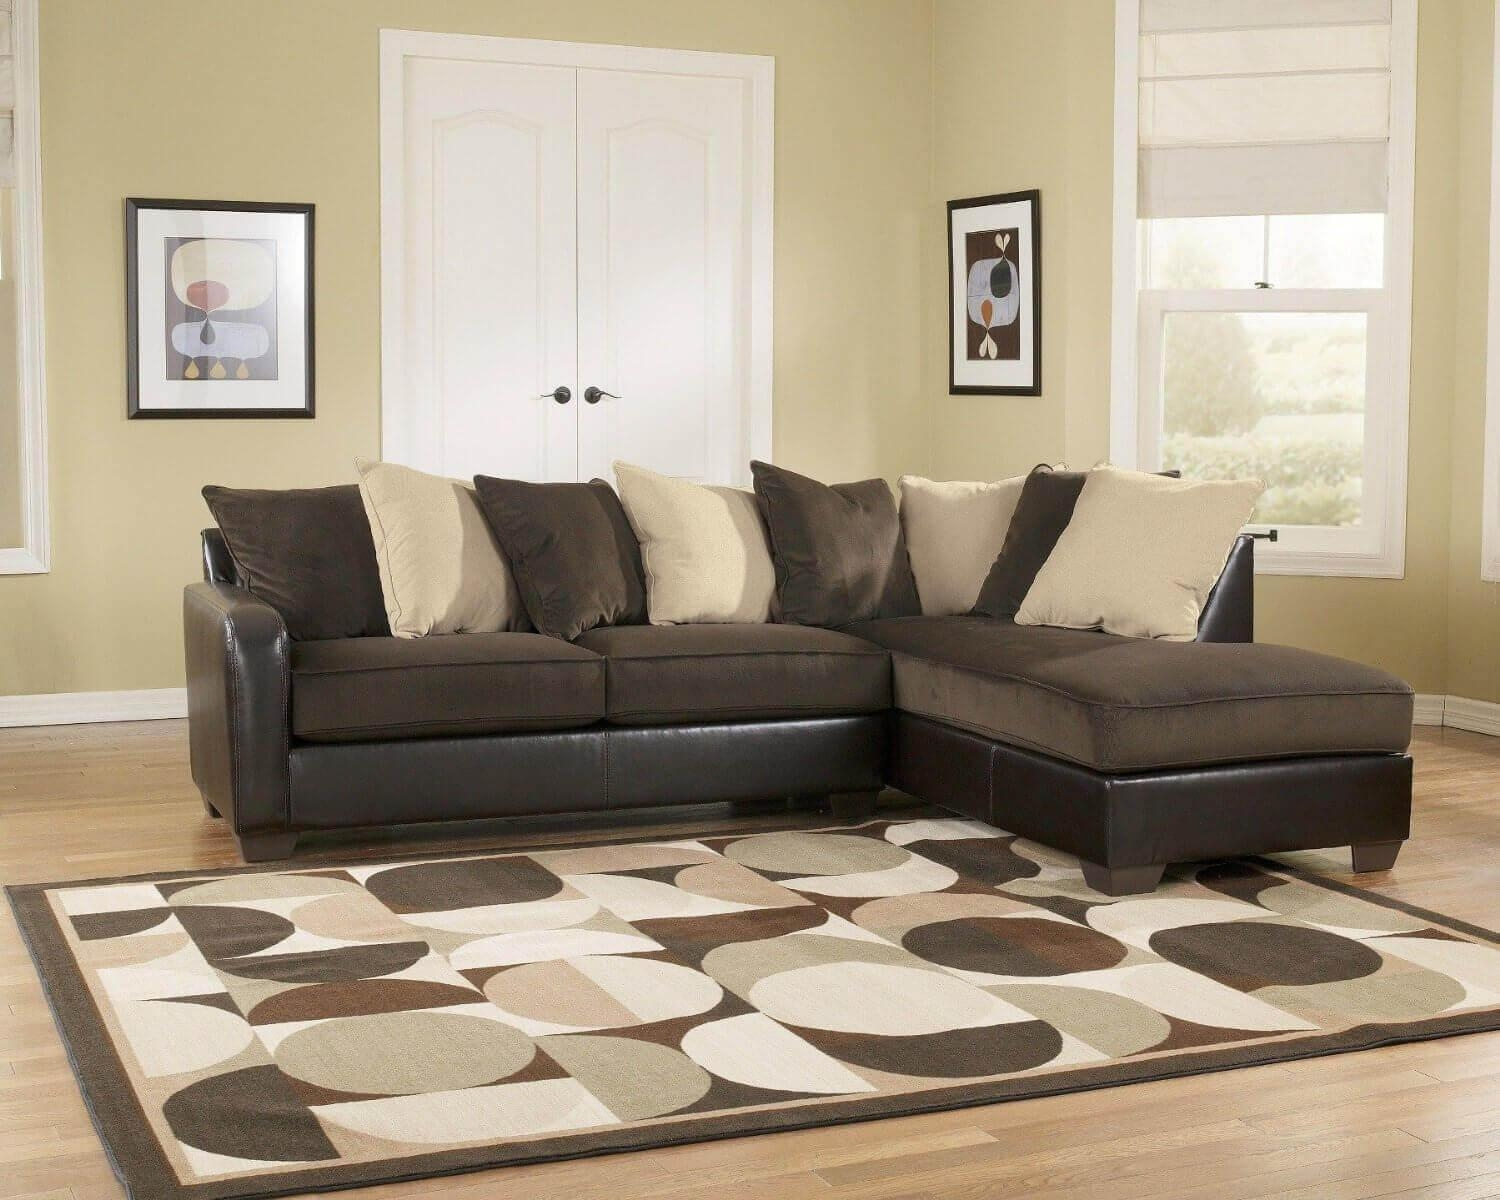 Chocolate Brown Sectional Sofa With Chaise – Fjellkjeden With Chocolate Brown Sectional Sofa (Image 3 of 15)